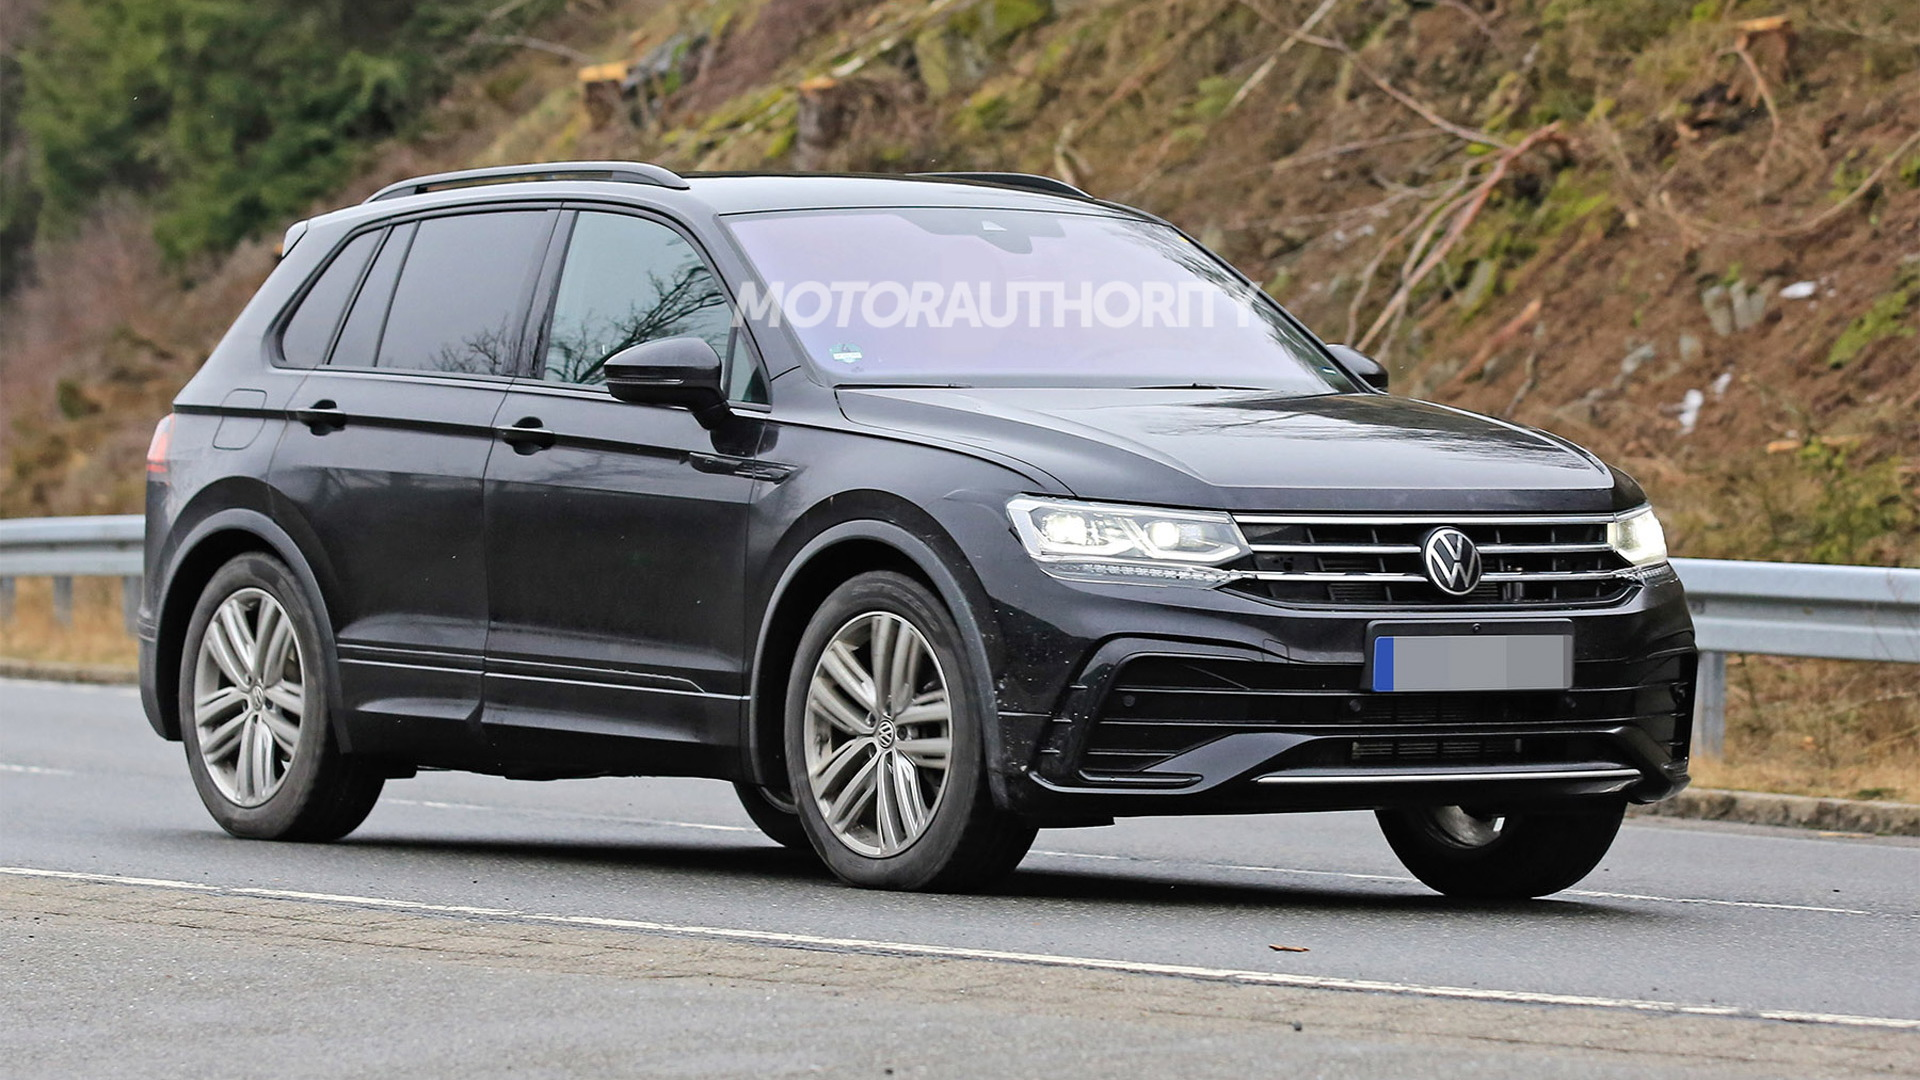 2021 Volkswagen Tiguan facelift spy shots - Photo credit: S. Baldauf/SB-Medien